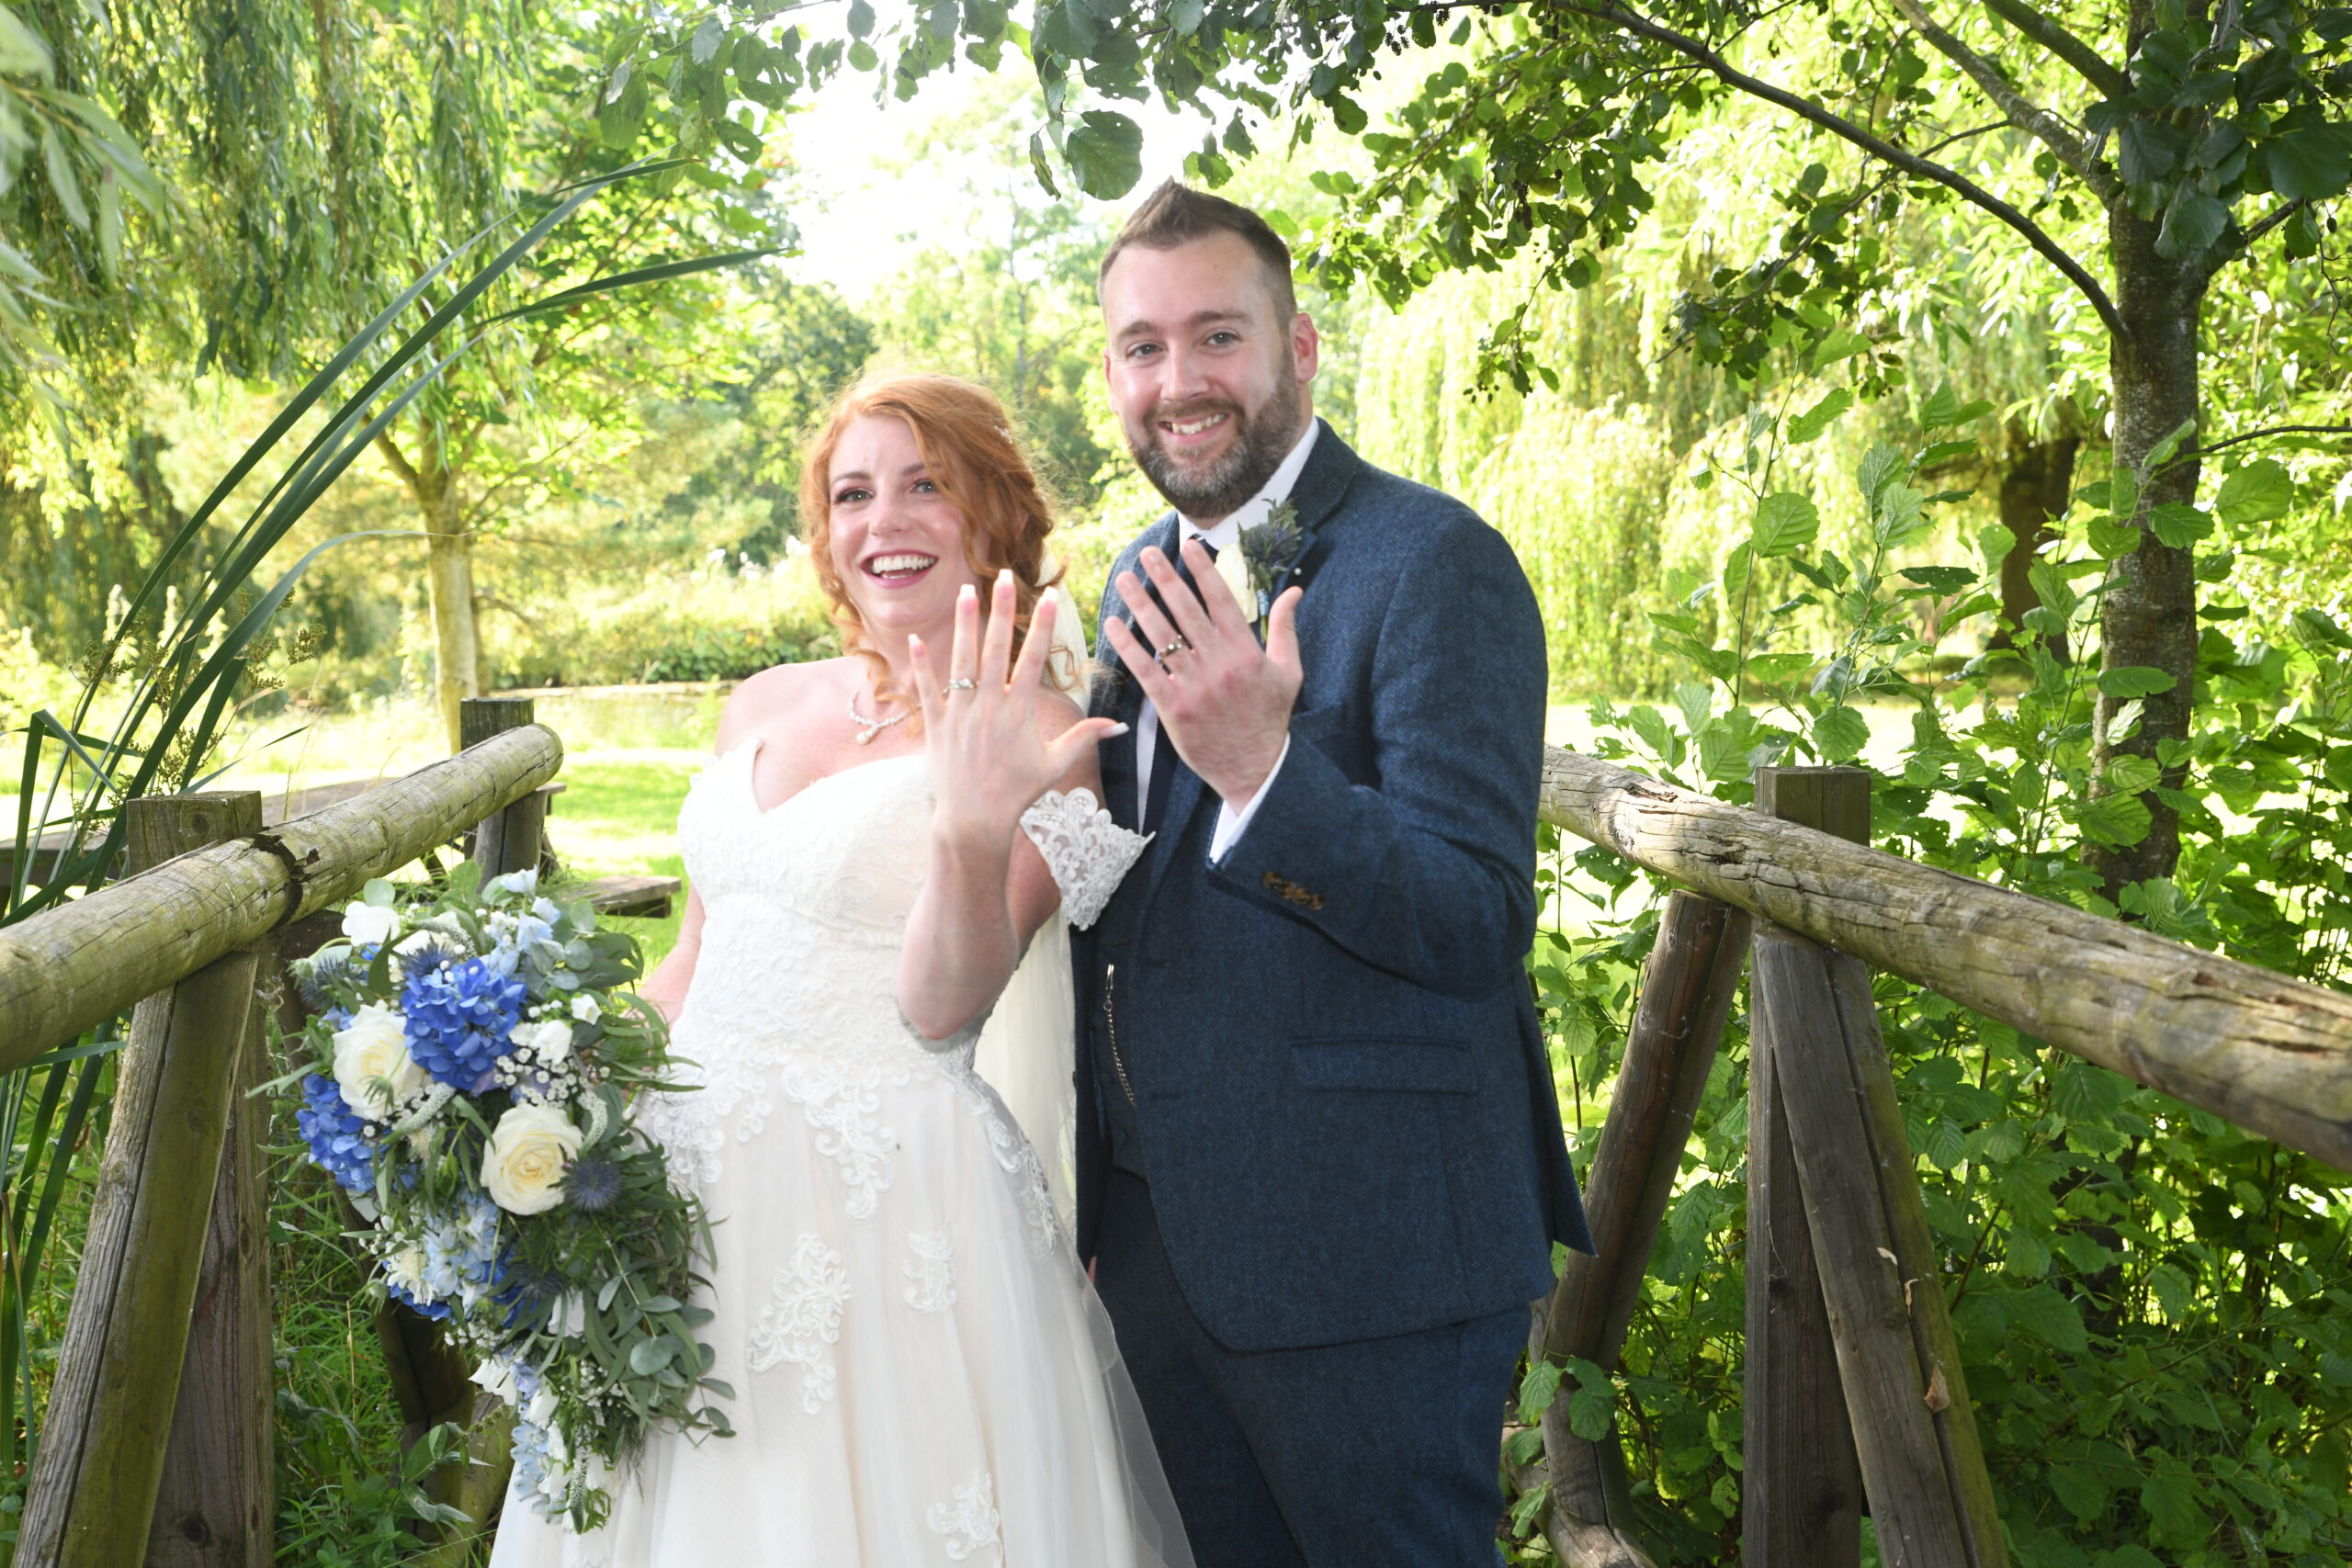 Getting Married at Wootton Park